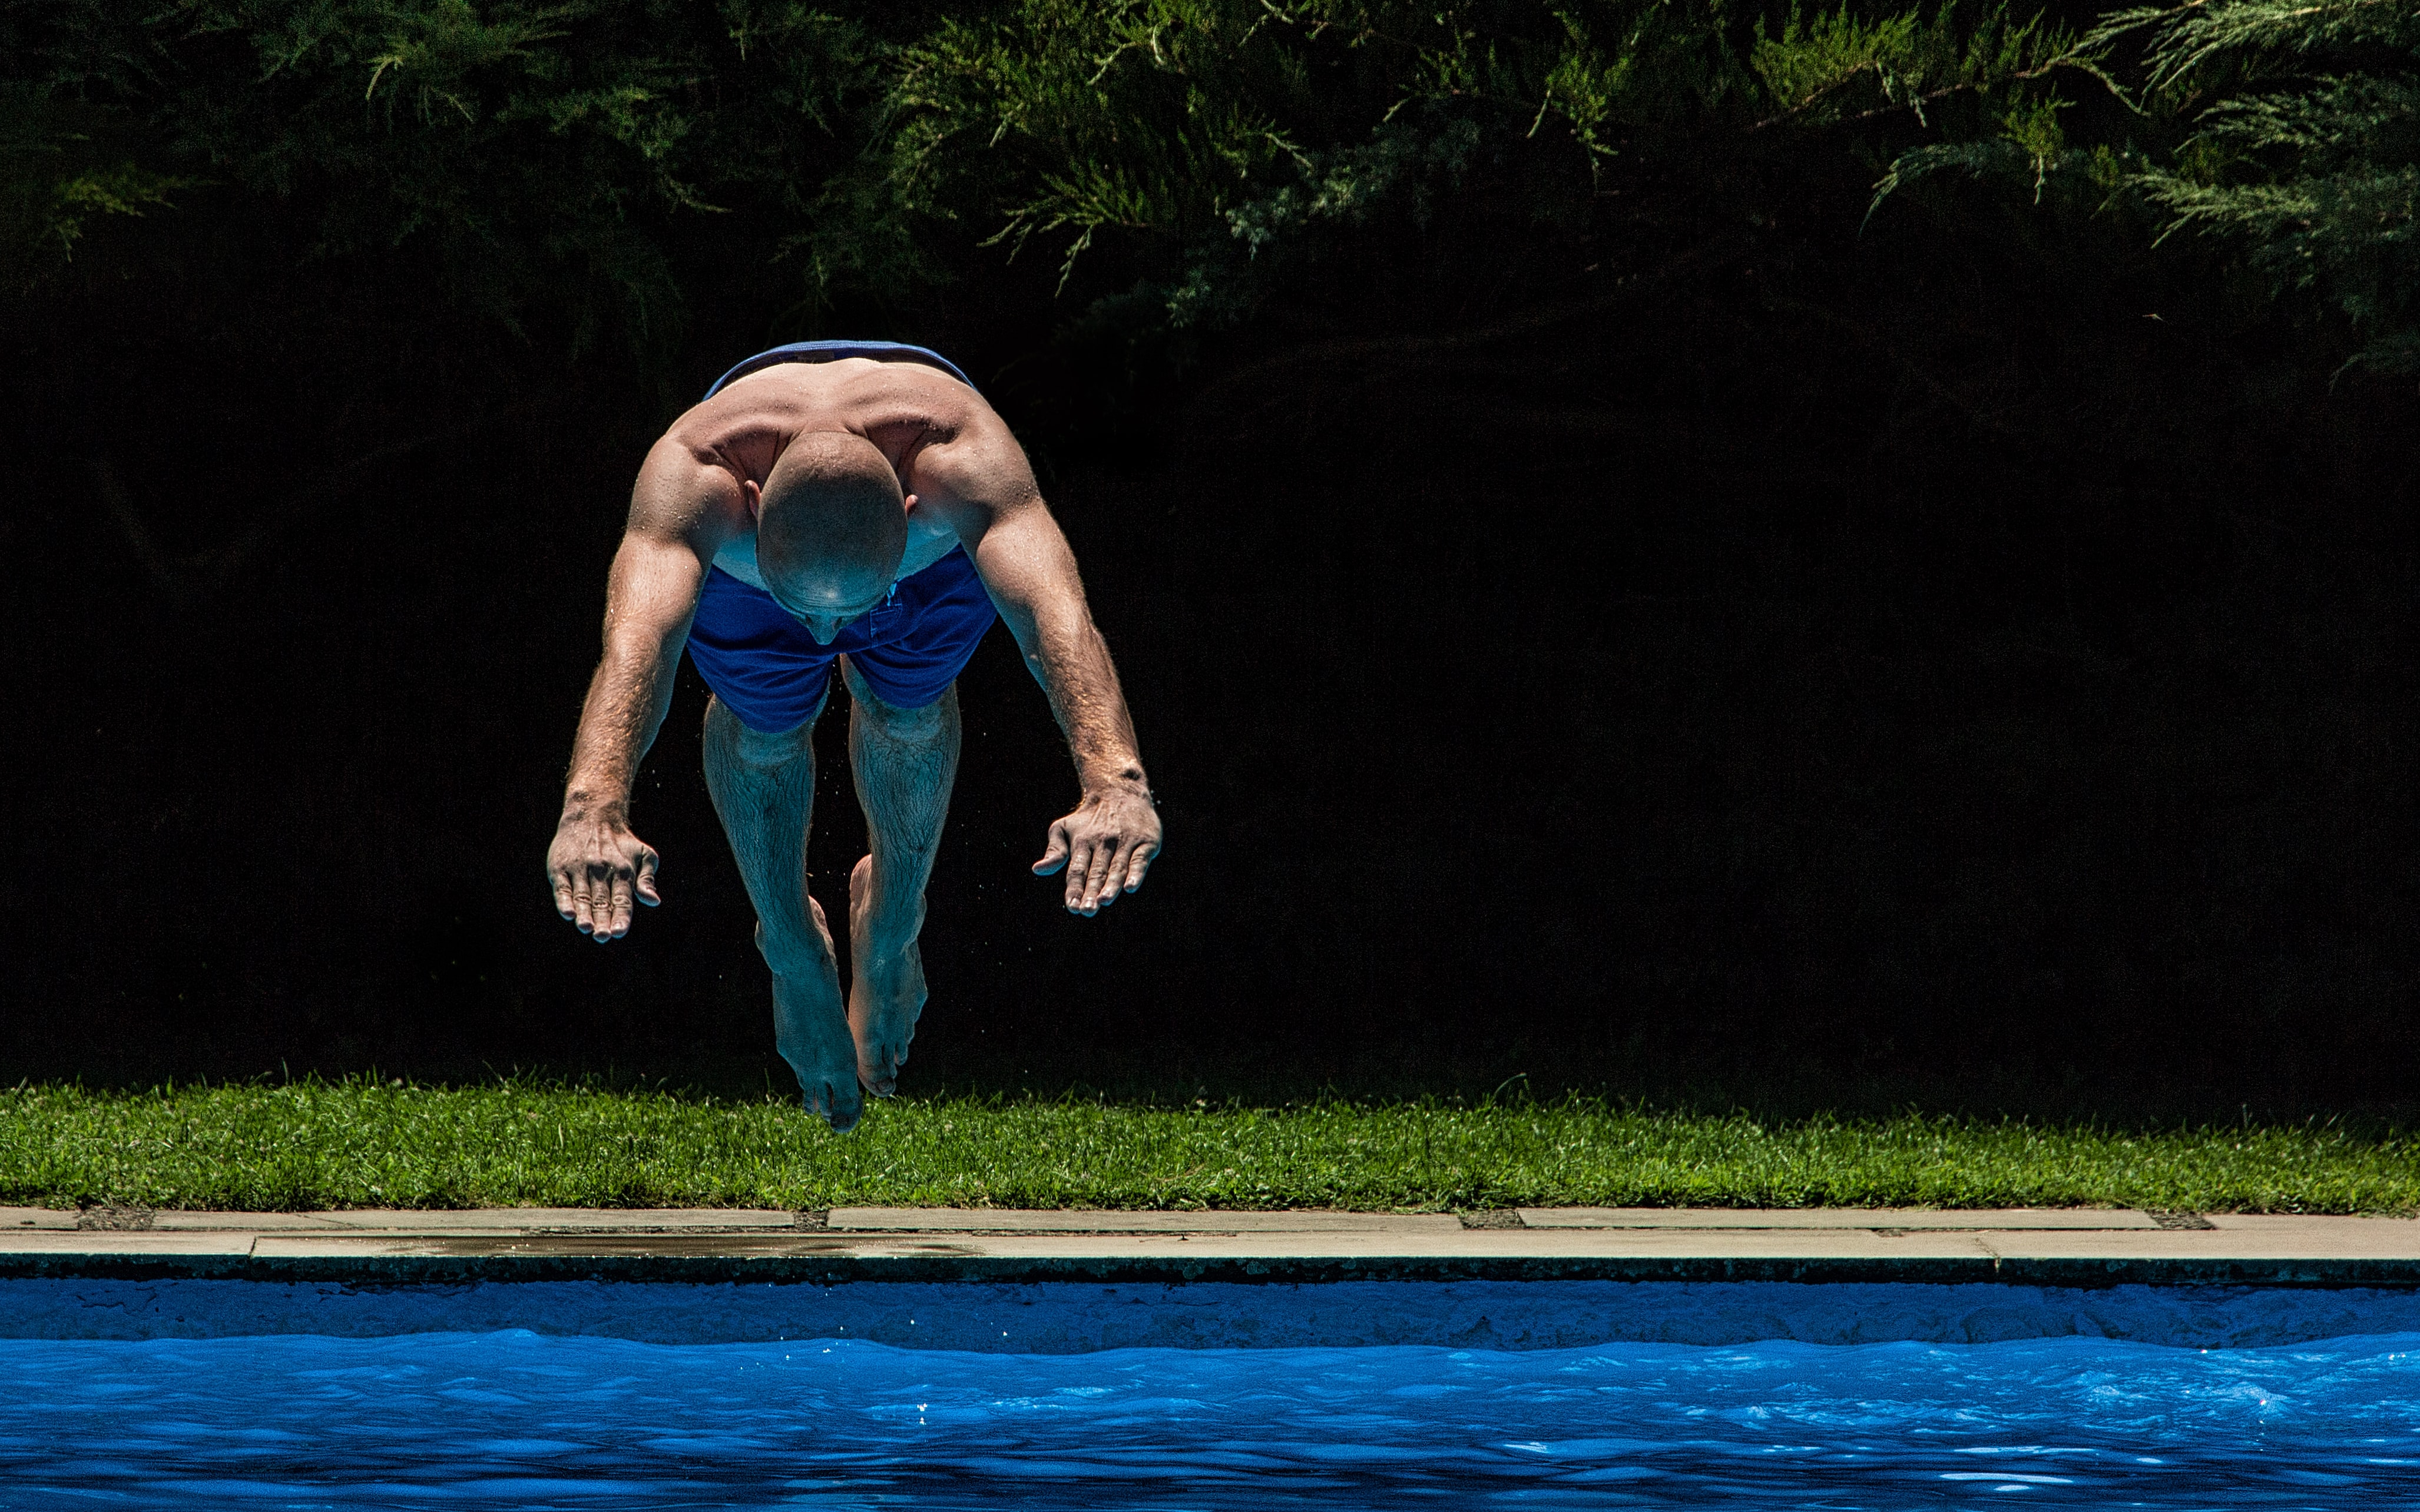 man jump in to the pool to swim